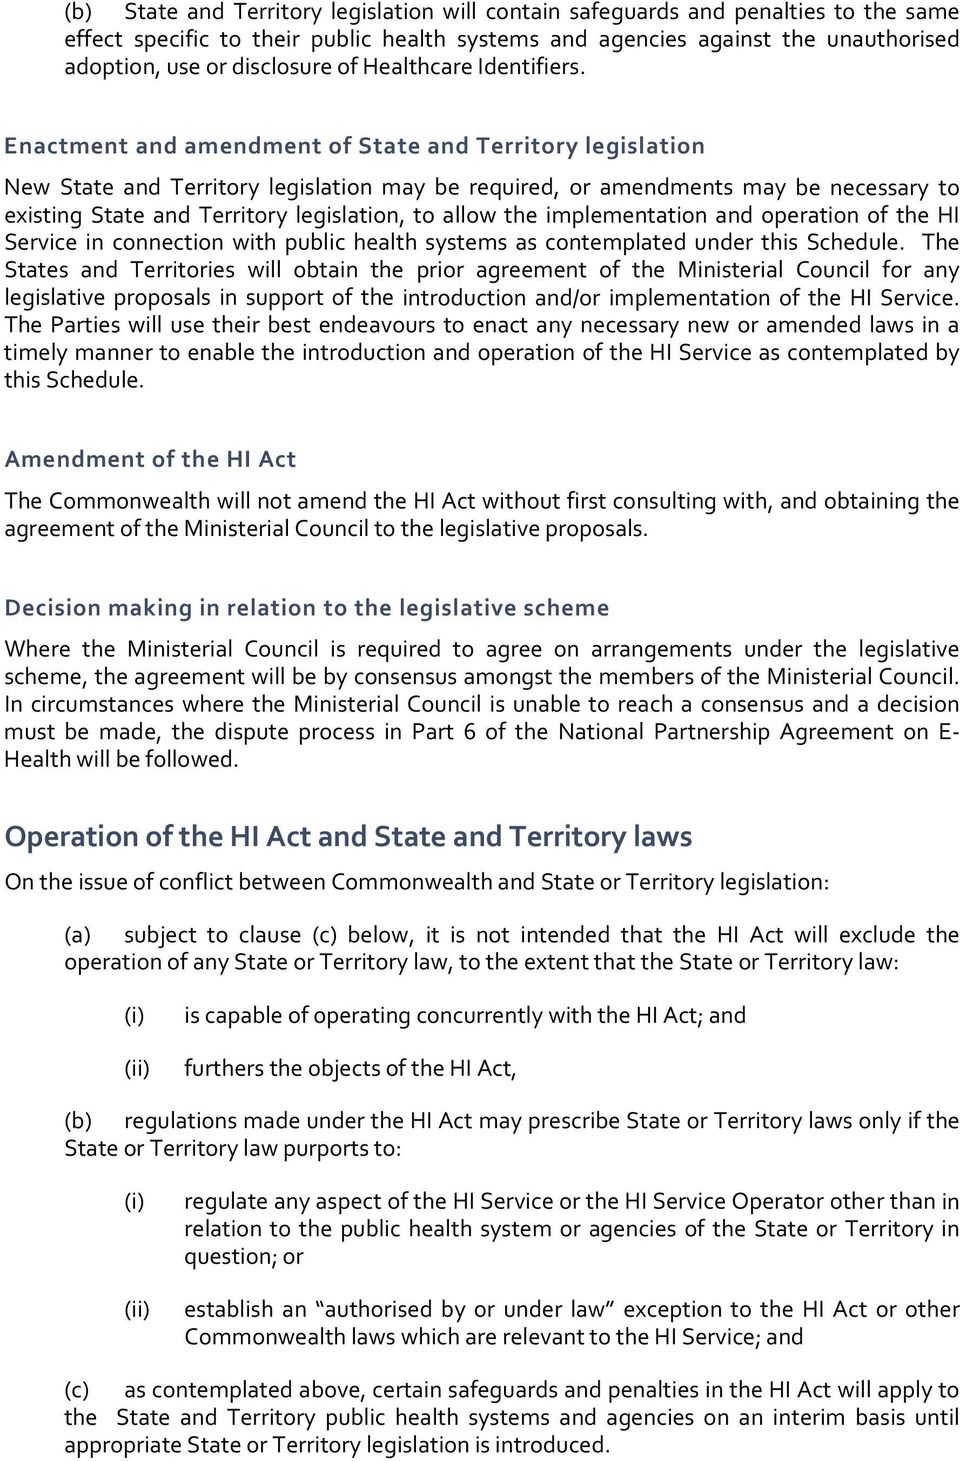 Enactment and amendment of State and Territory legislation New State and Territory legislation may be required, or amendments may be necessary to existing State and Territory legislation, to allow